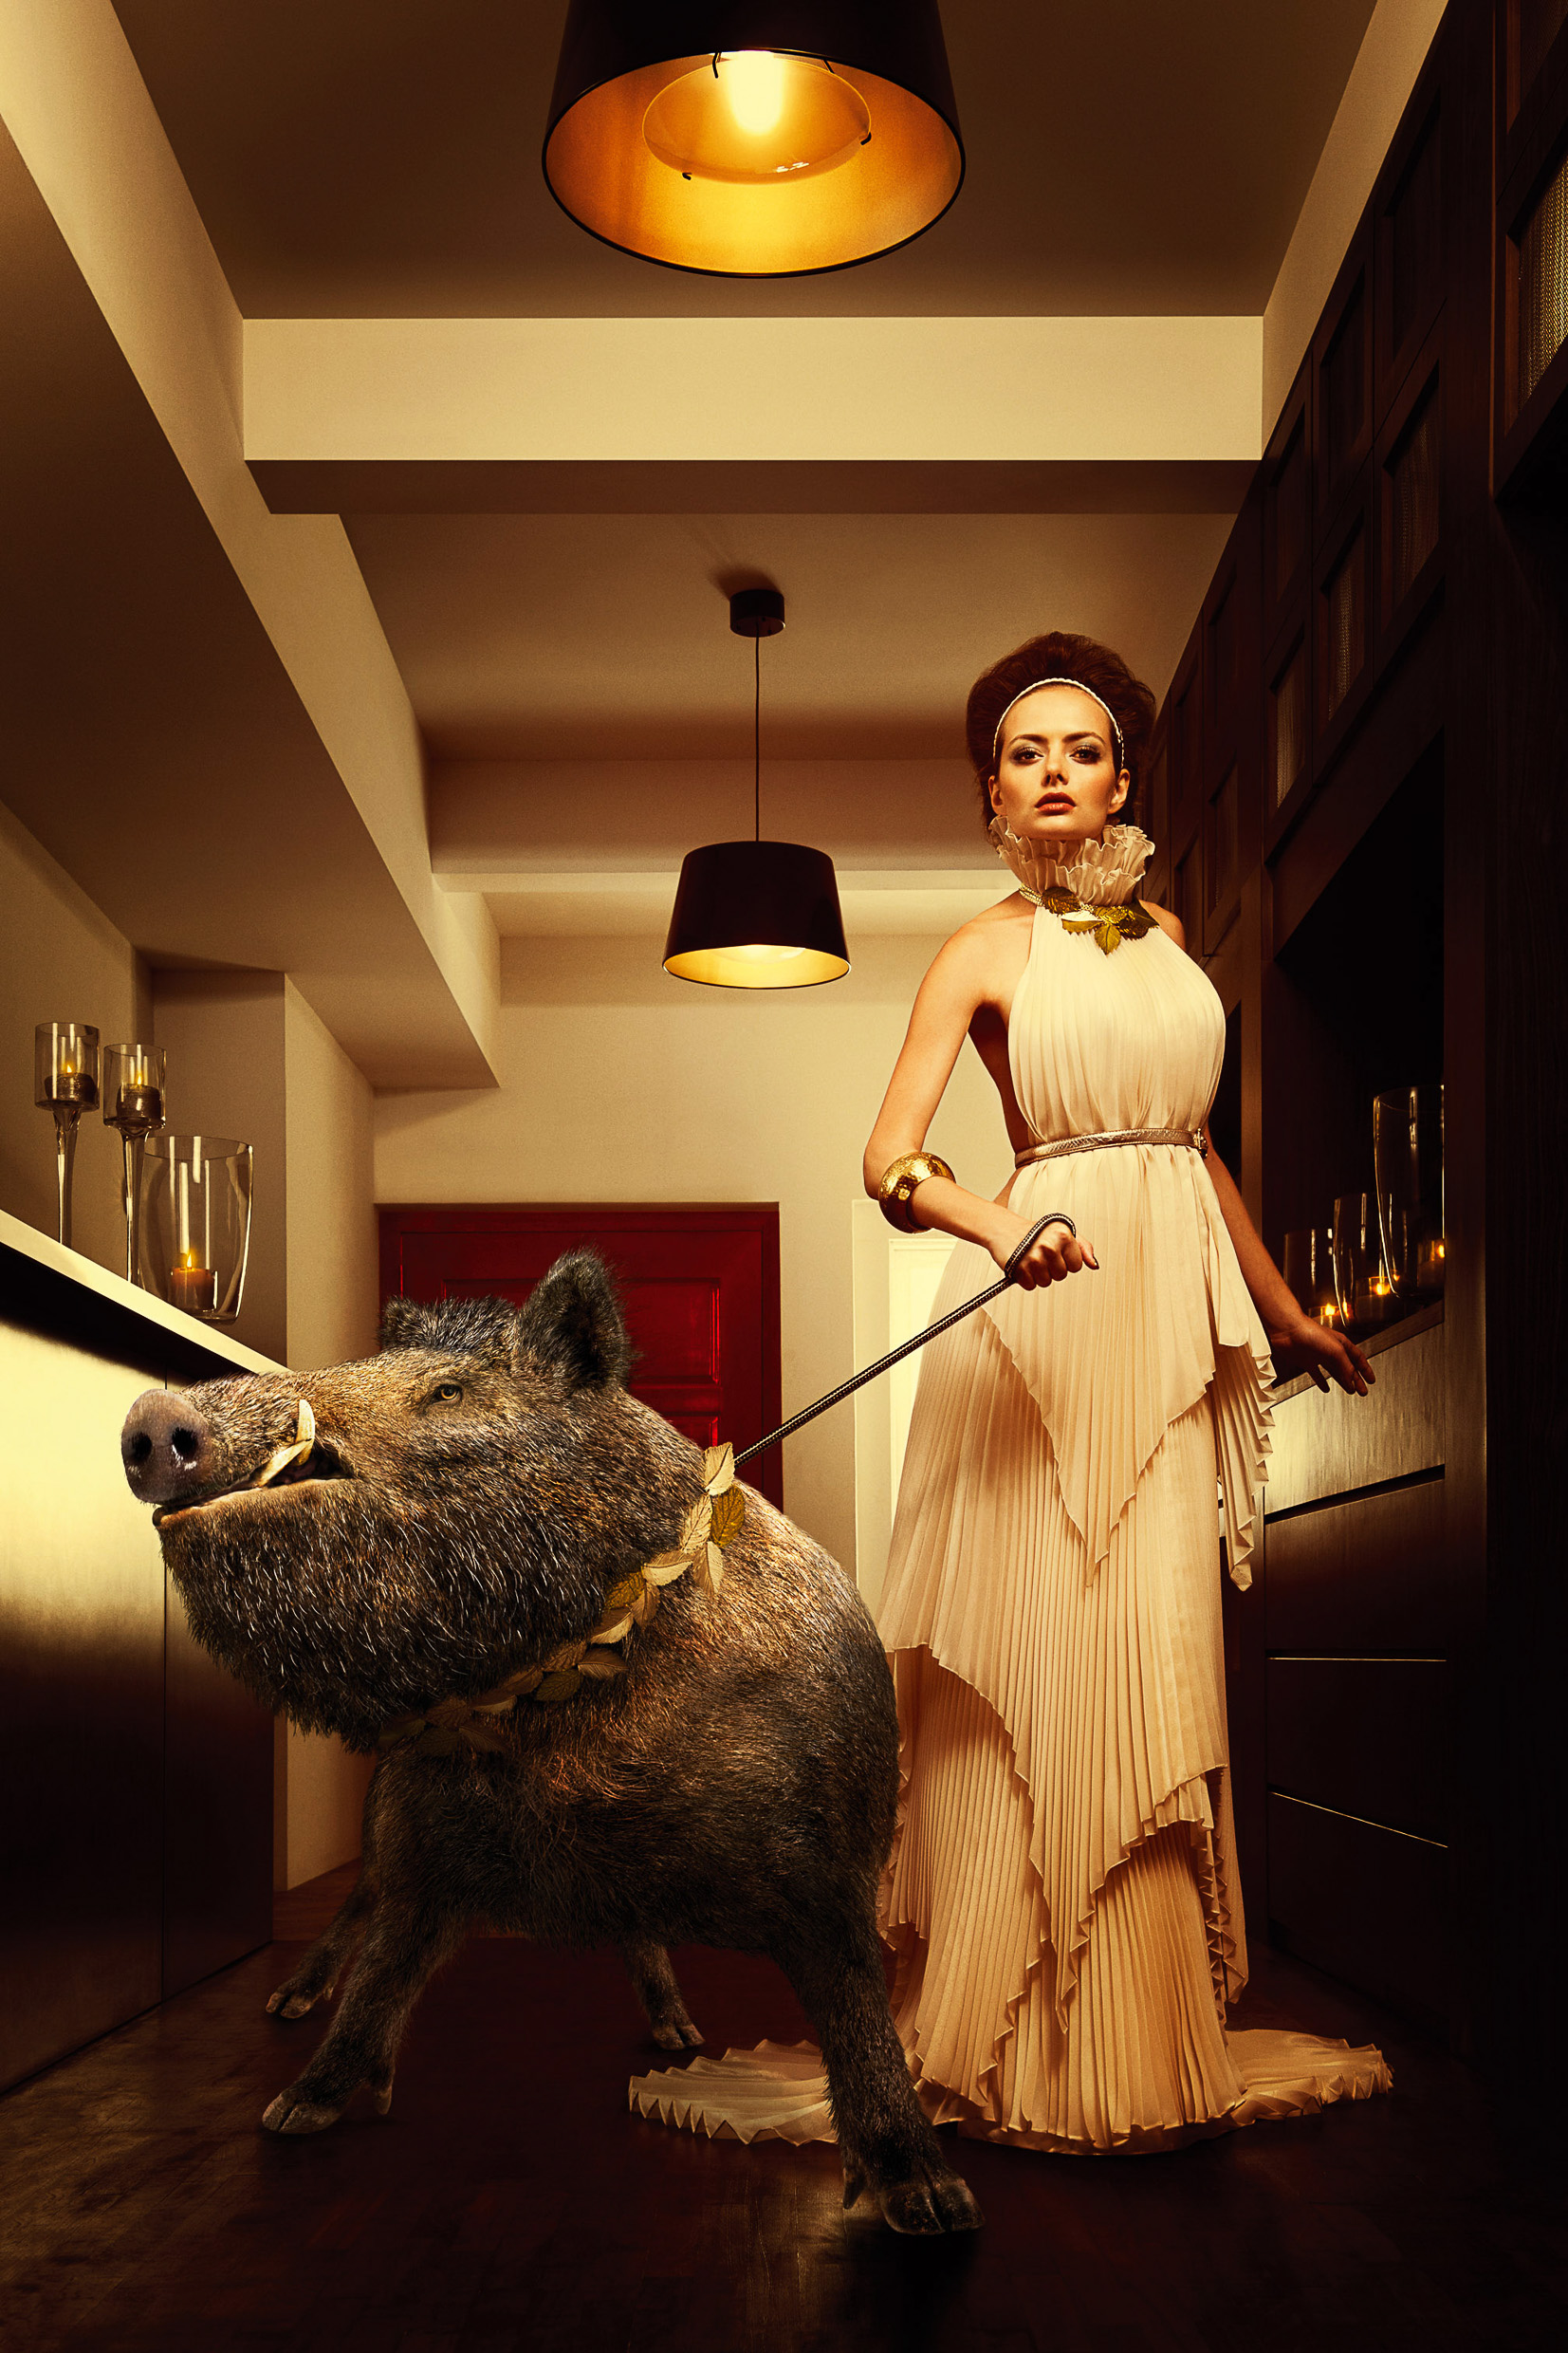 attractive woman with boar on a leash